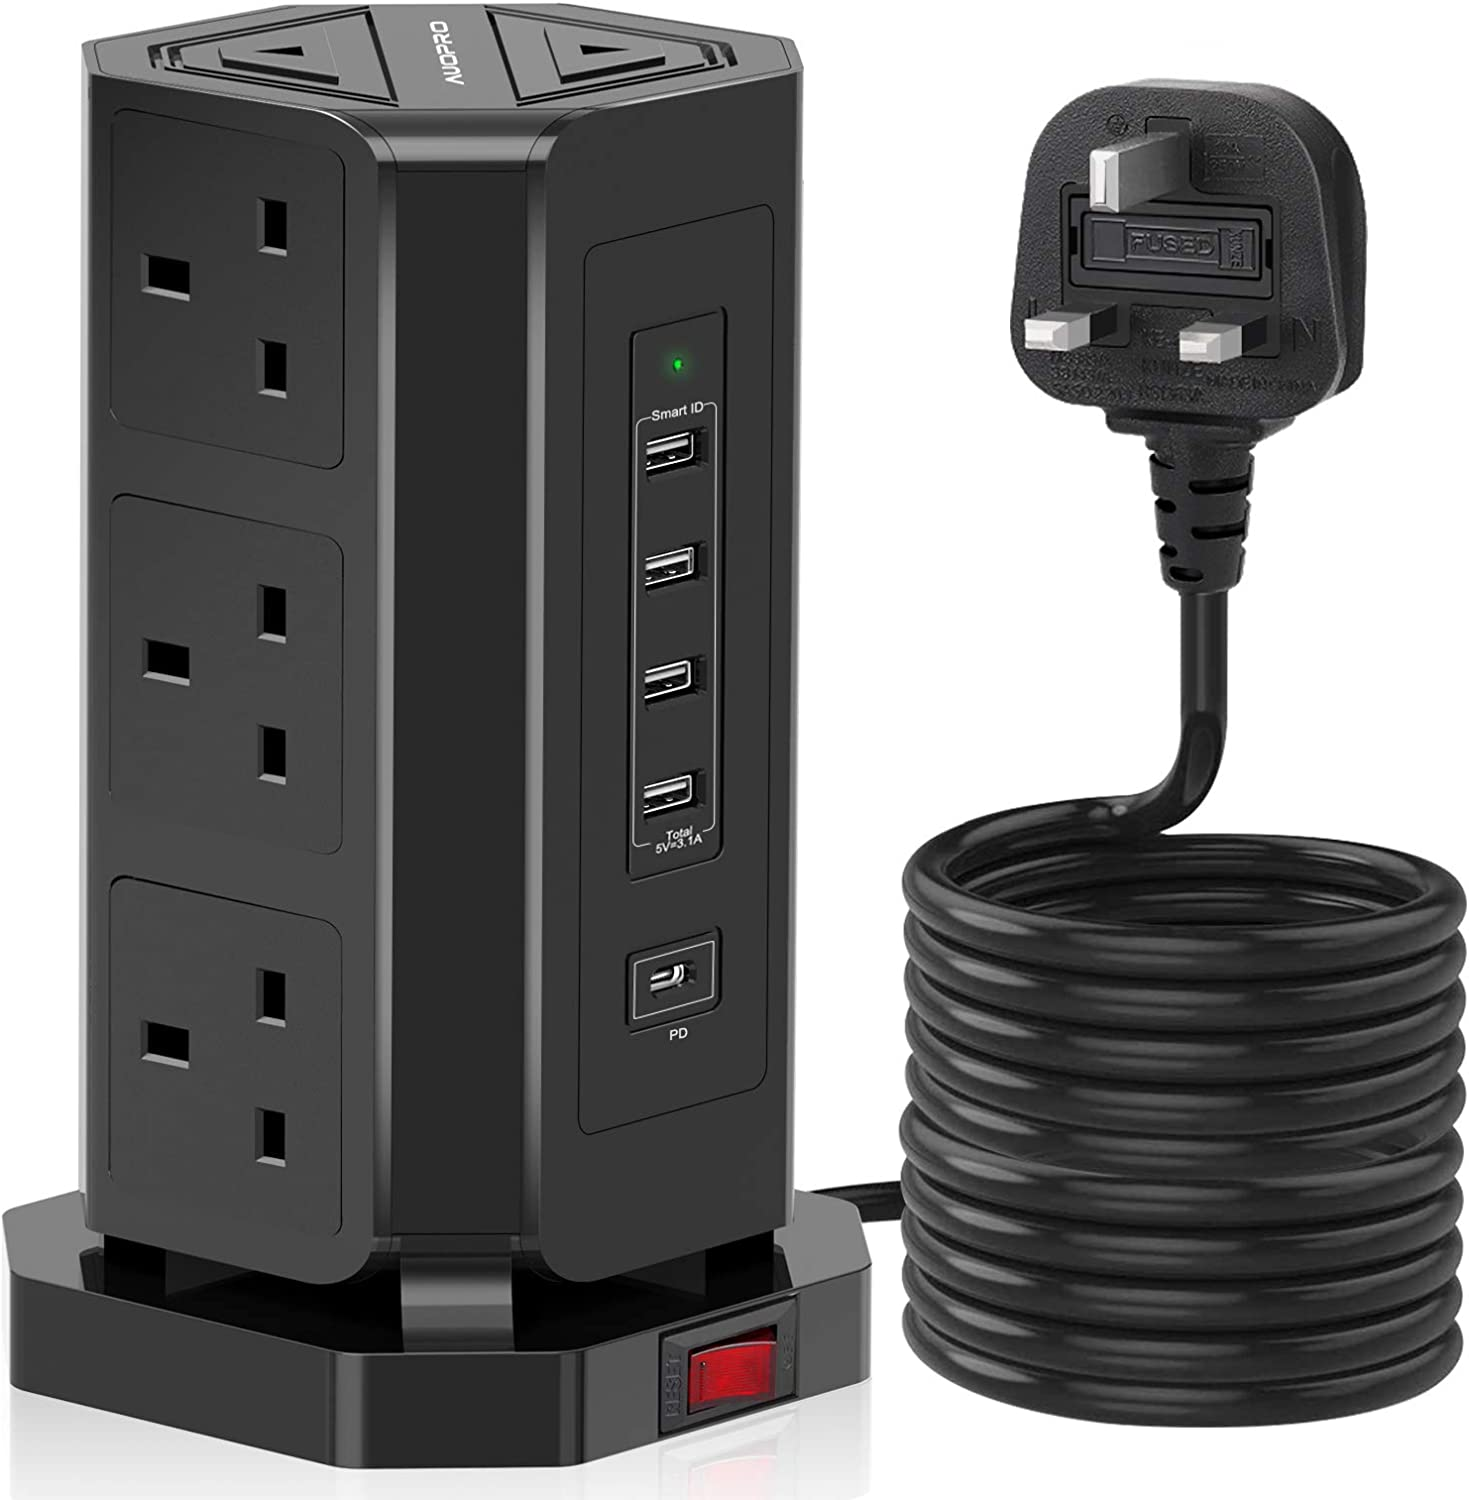 Long Cord for Computer PC Tablets Mobile Devices AUOPRO 9 Gang Extension Tower with 5 USB Slots Black Power Strip 1 USB C//18W Fast Charging Tower Extension Lead 3M Multi Plug Desktop Power Socket